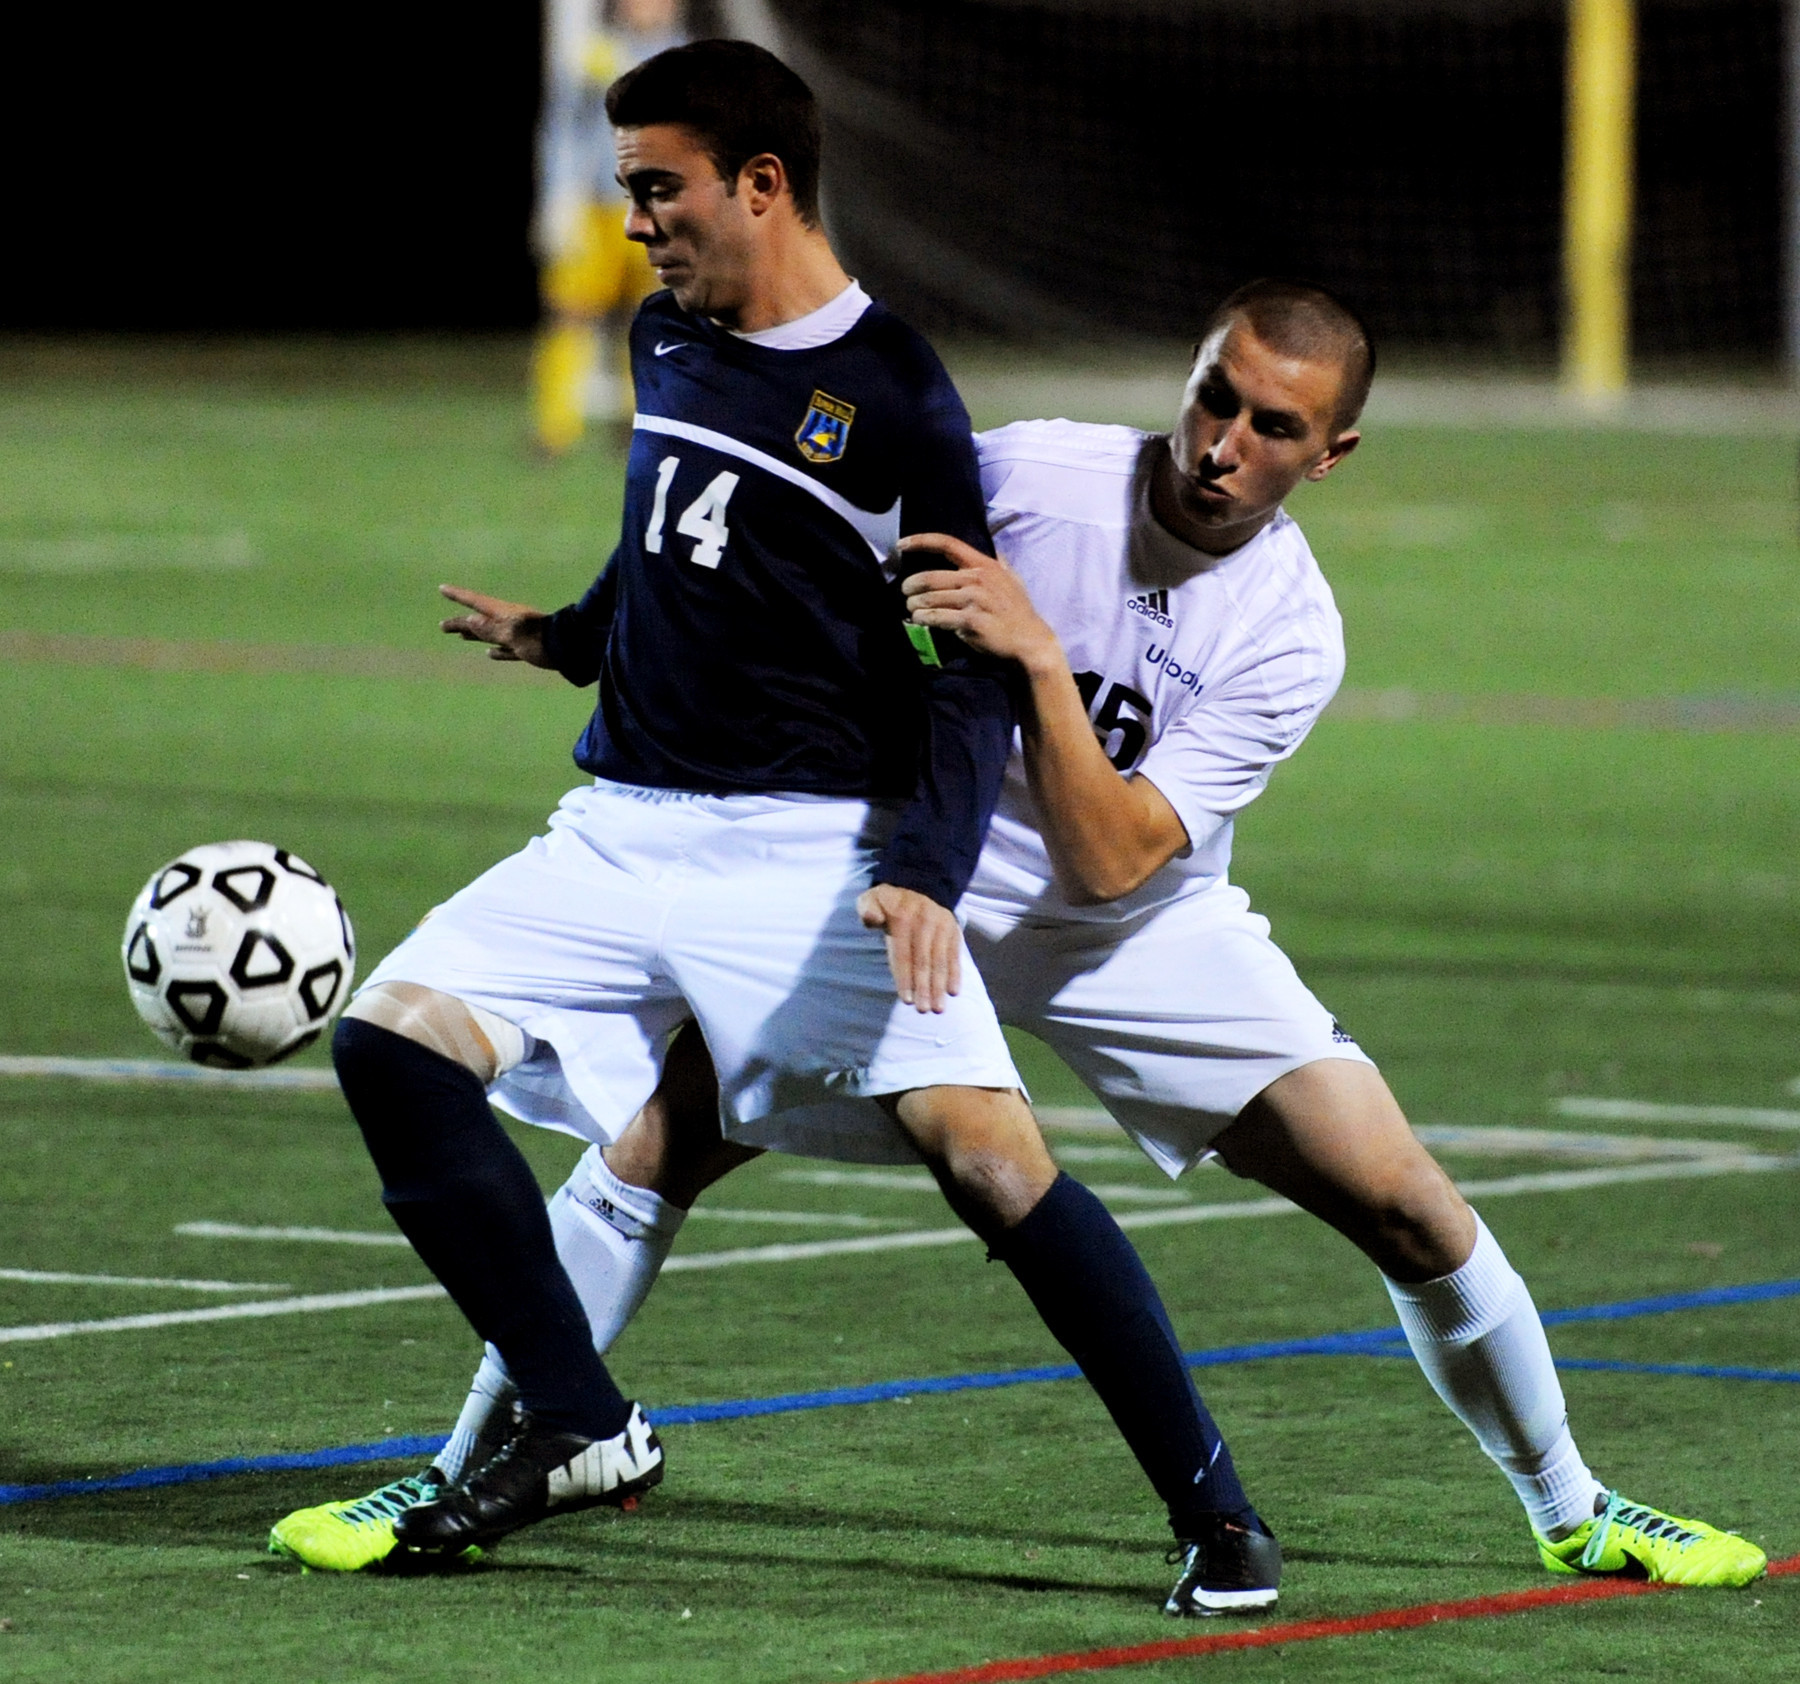 Urbana beats River Hill in 3A boys soccer semifinals ...